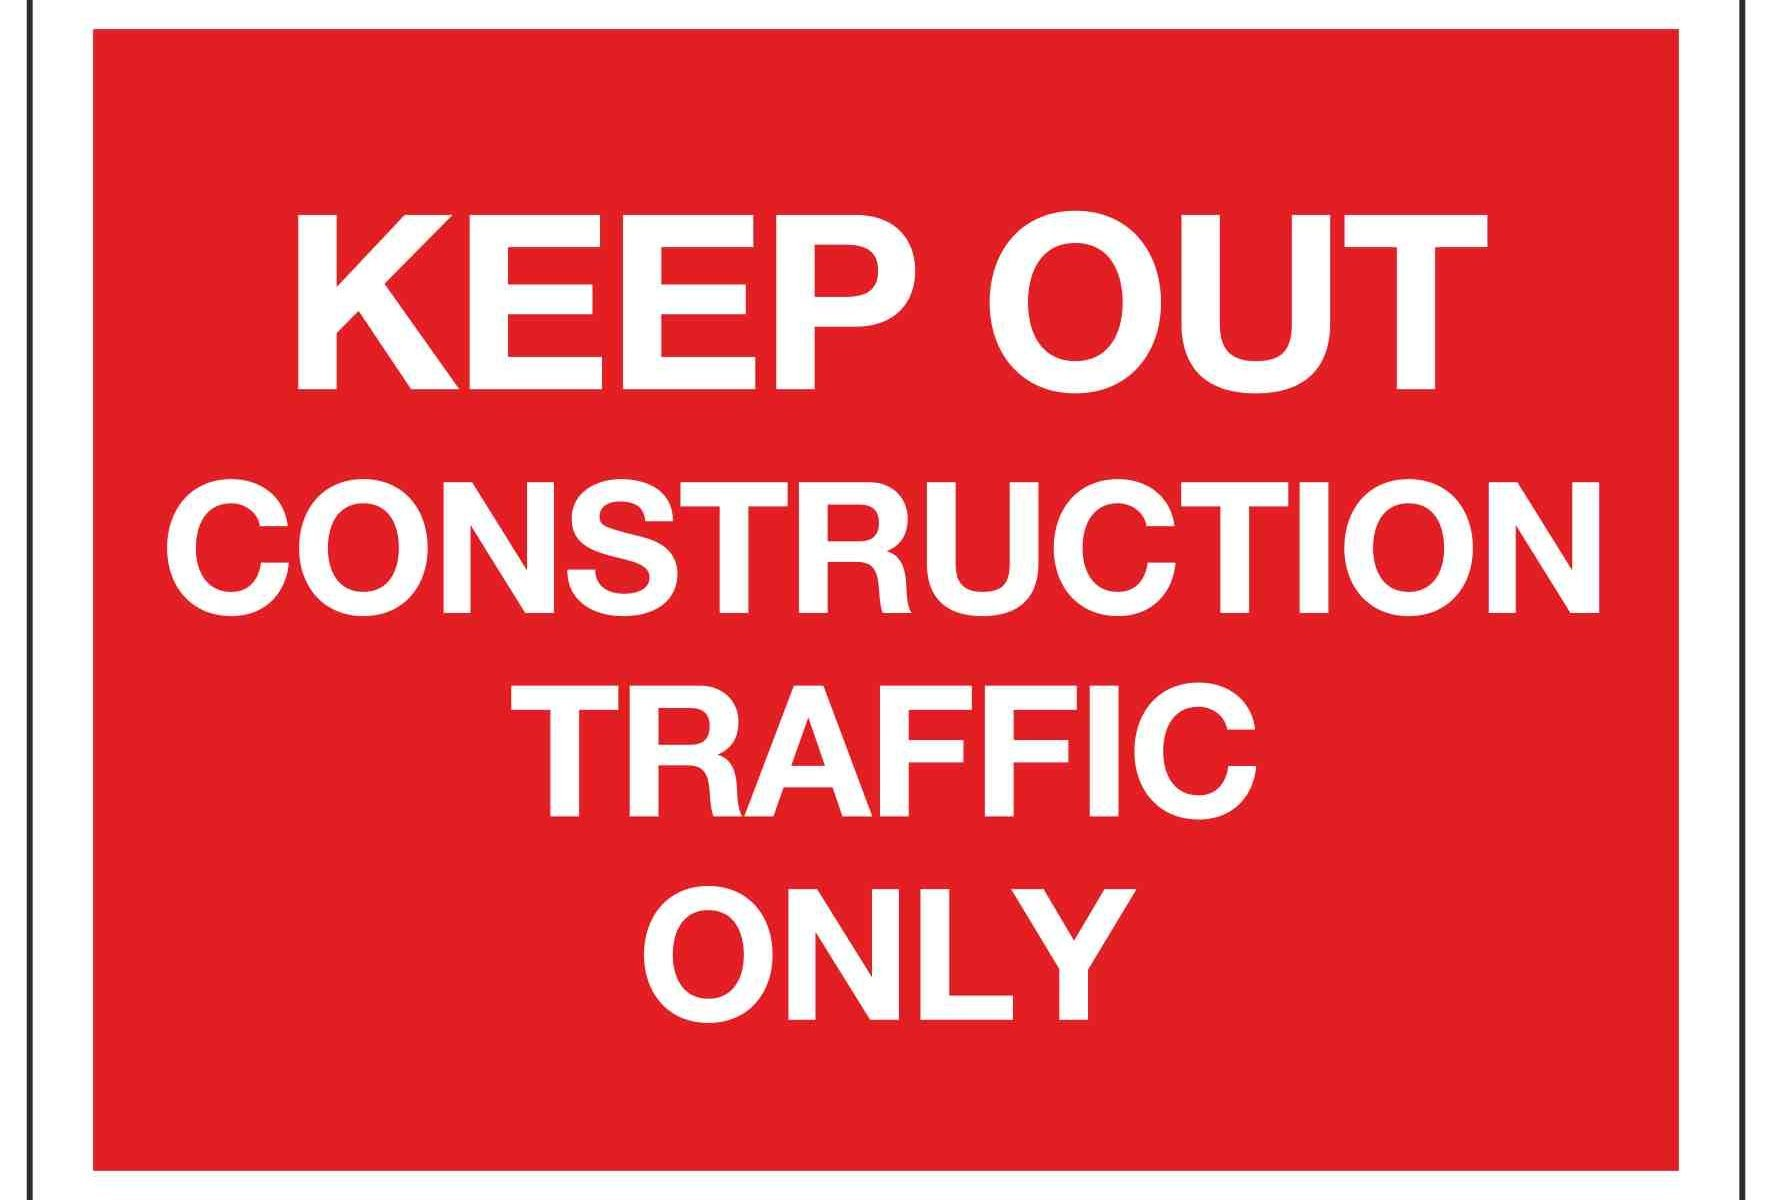 KEEP OUT CONSTRUCTION TRAFFIC ONLY